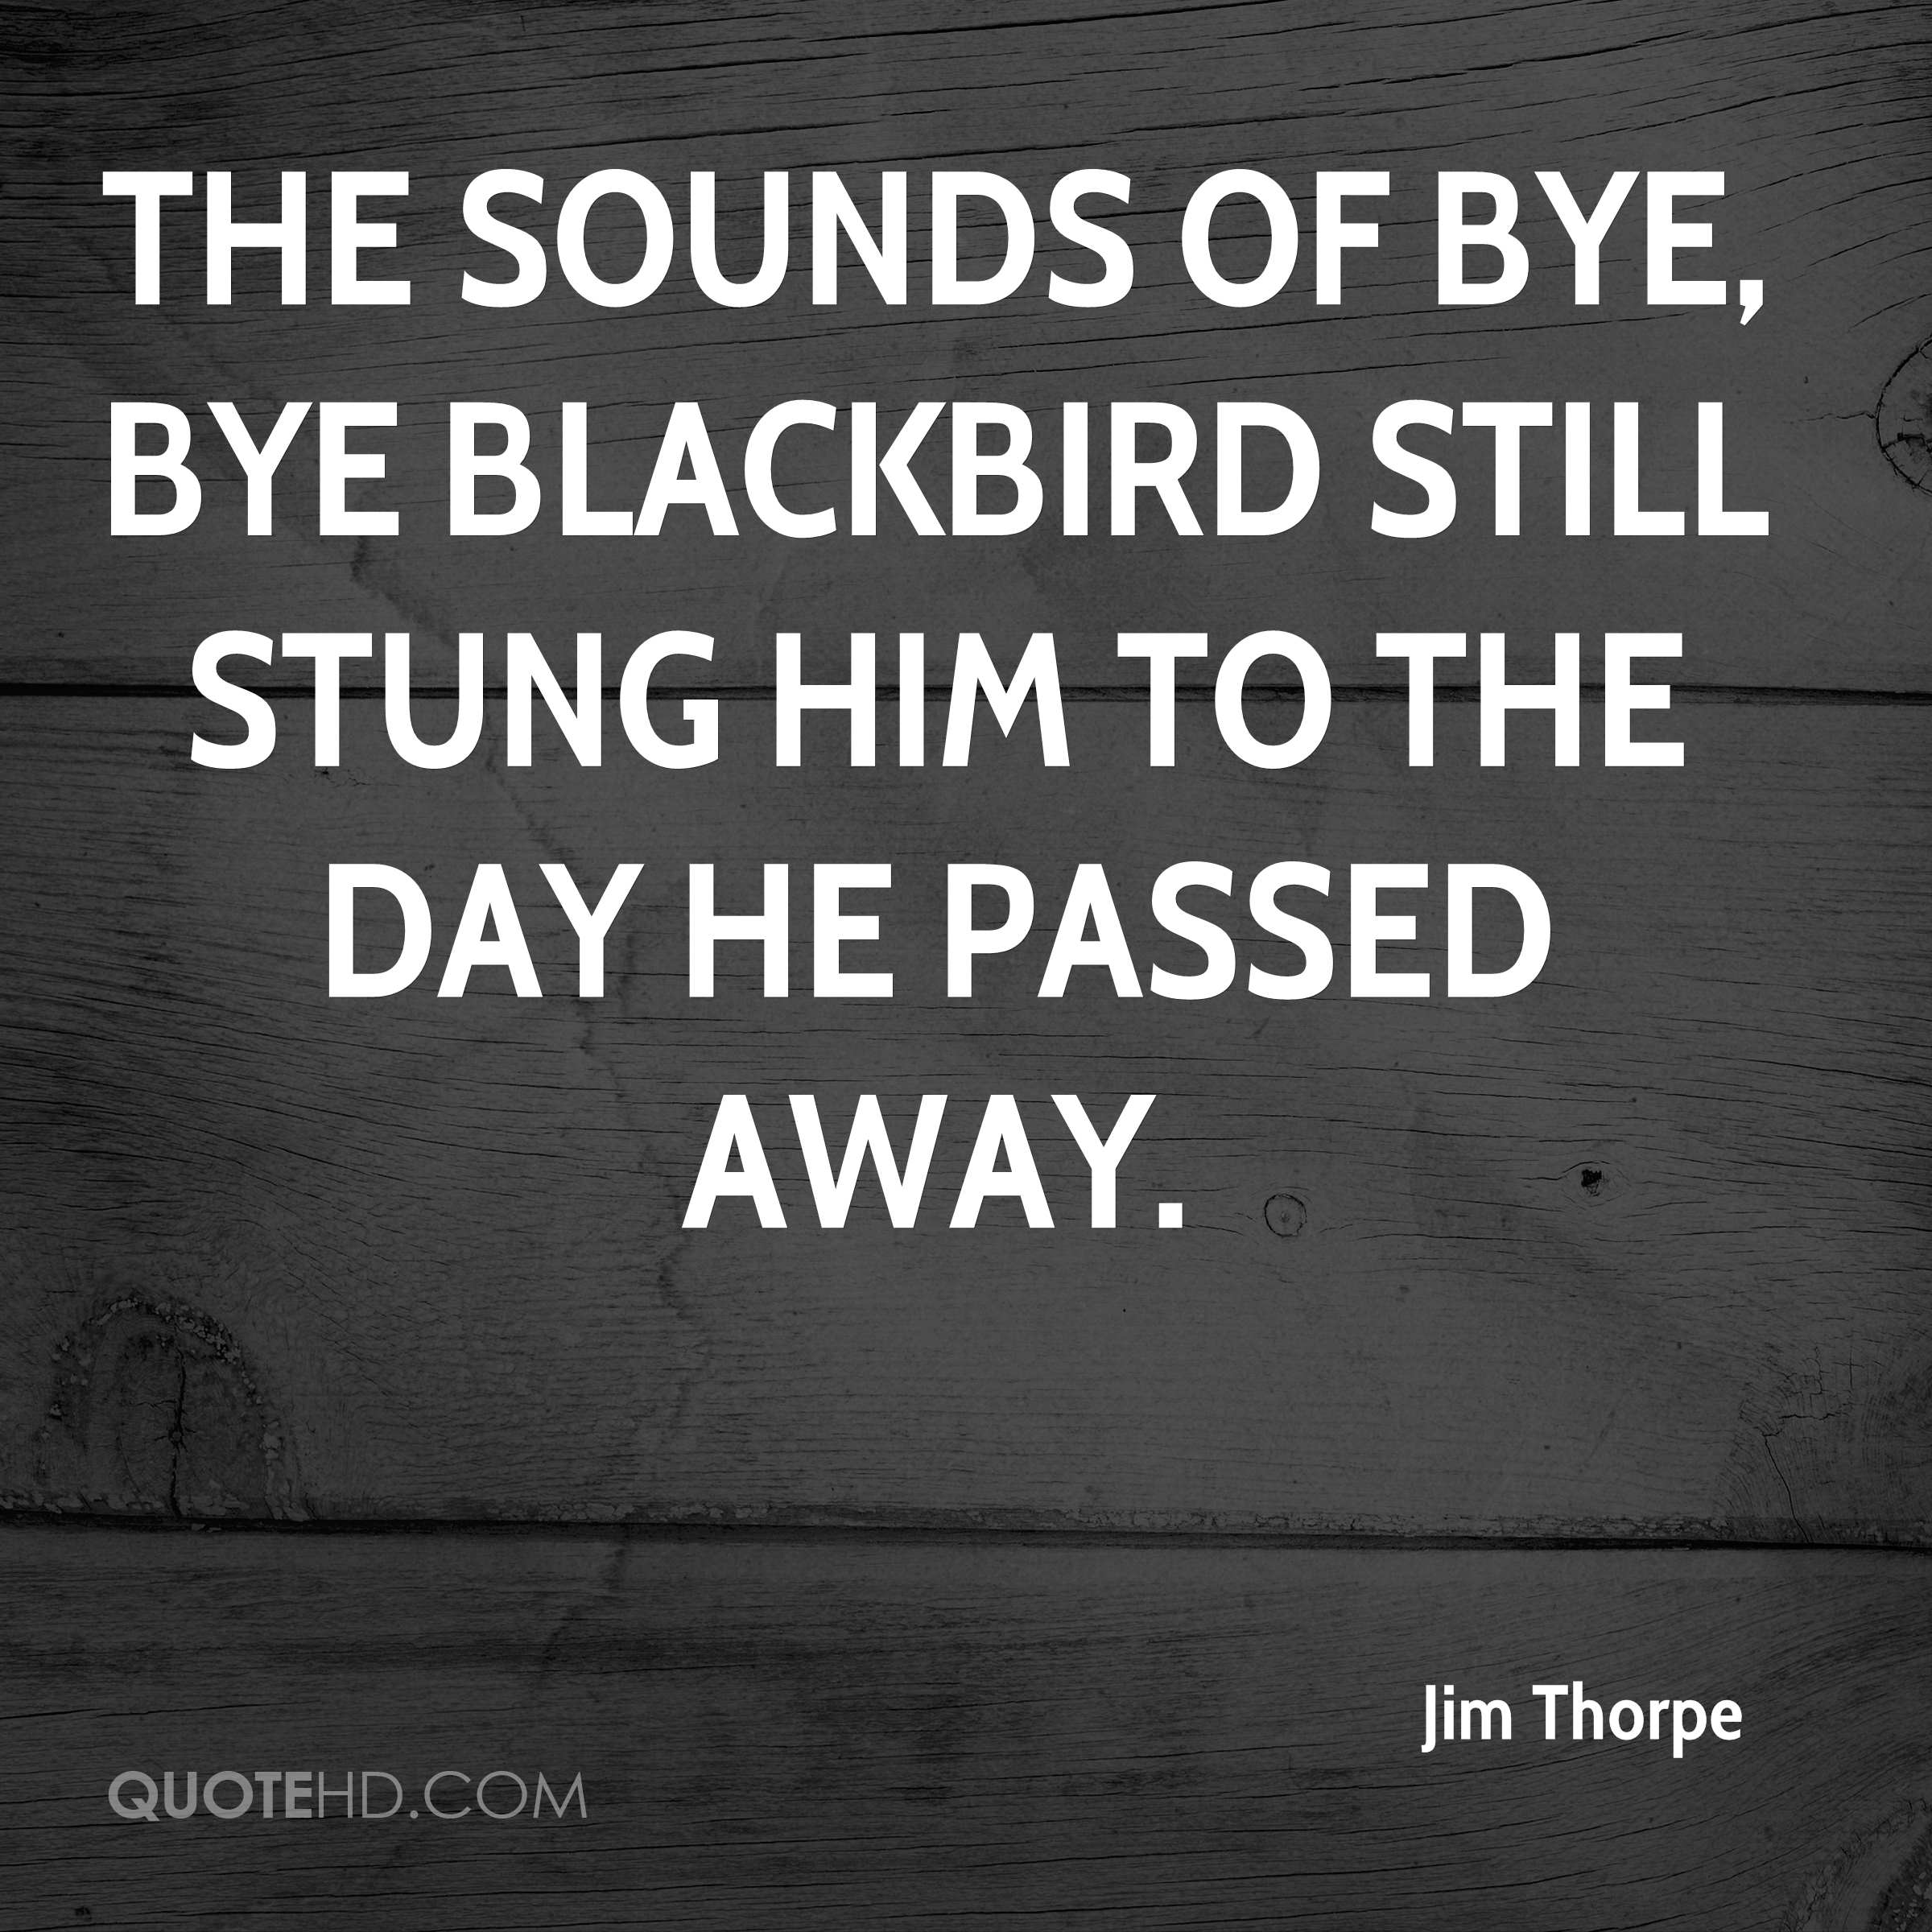 The sounds of Bye, Bye Blackbird still stung him to the day he passed away.